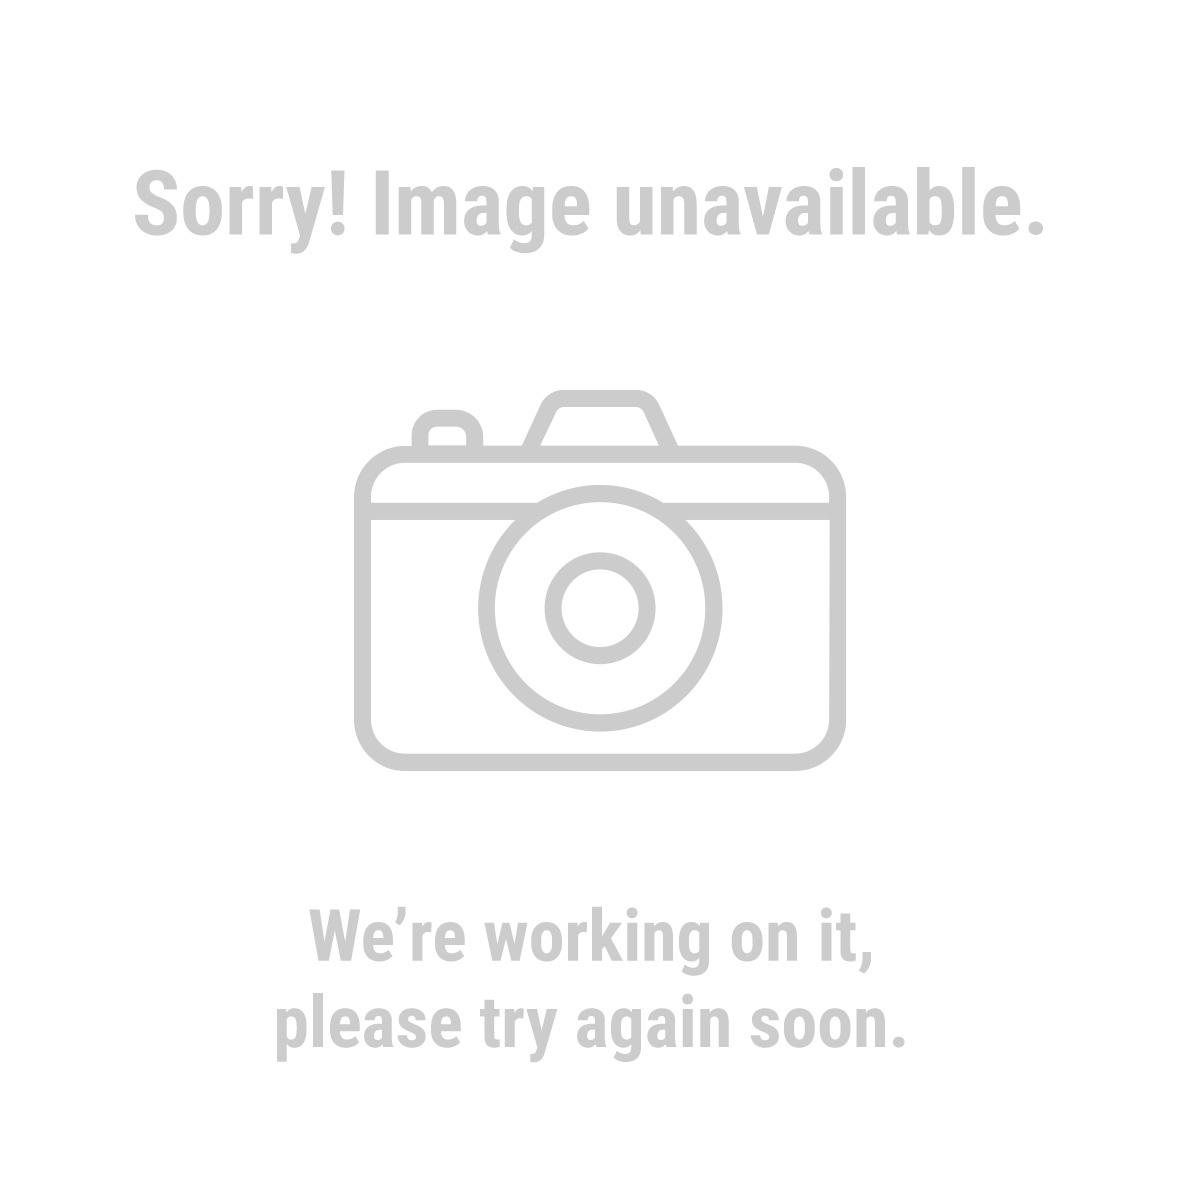 Bunker Hill Security 69643 60 LED Solar Security Light